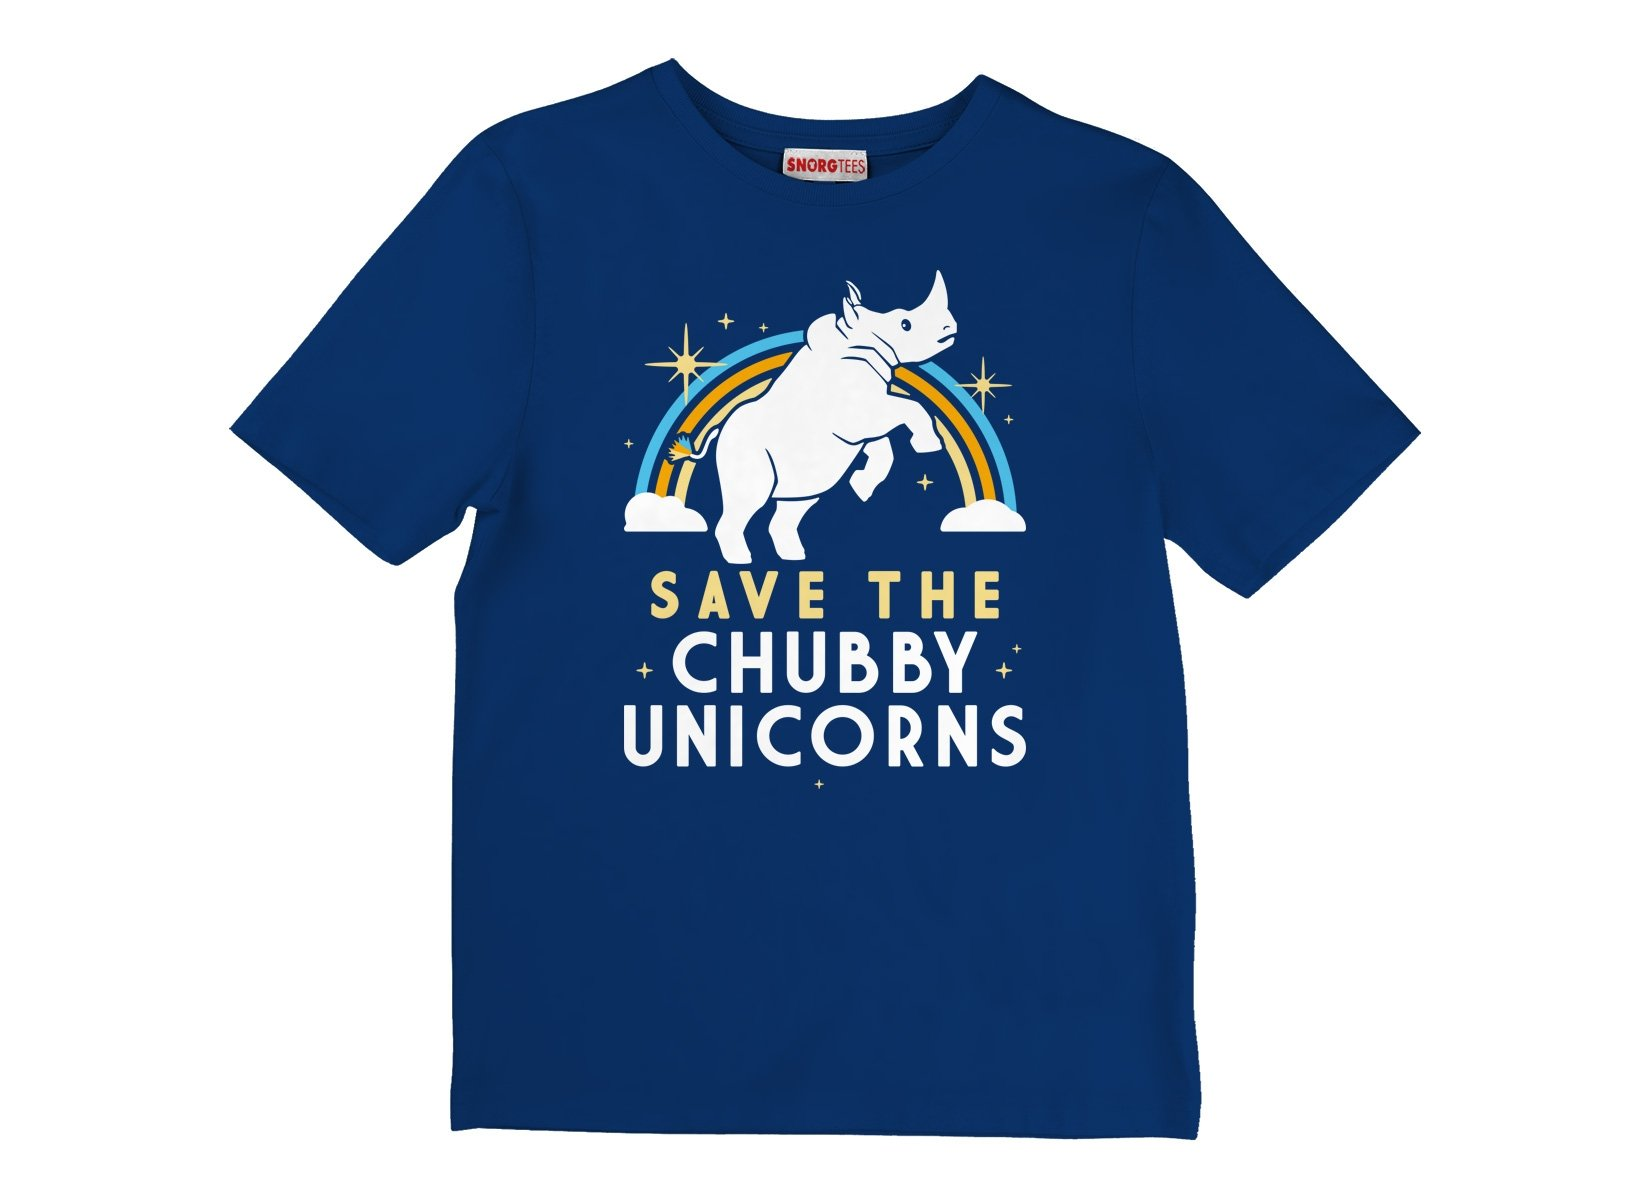 Save The Chubby Unicorns on Kids T-Shirt